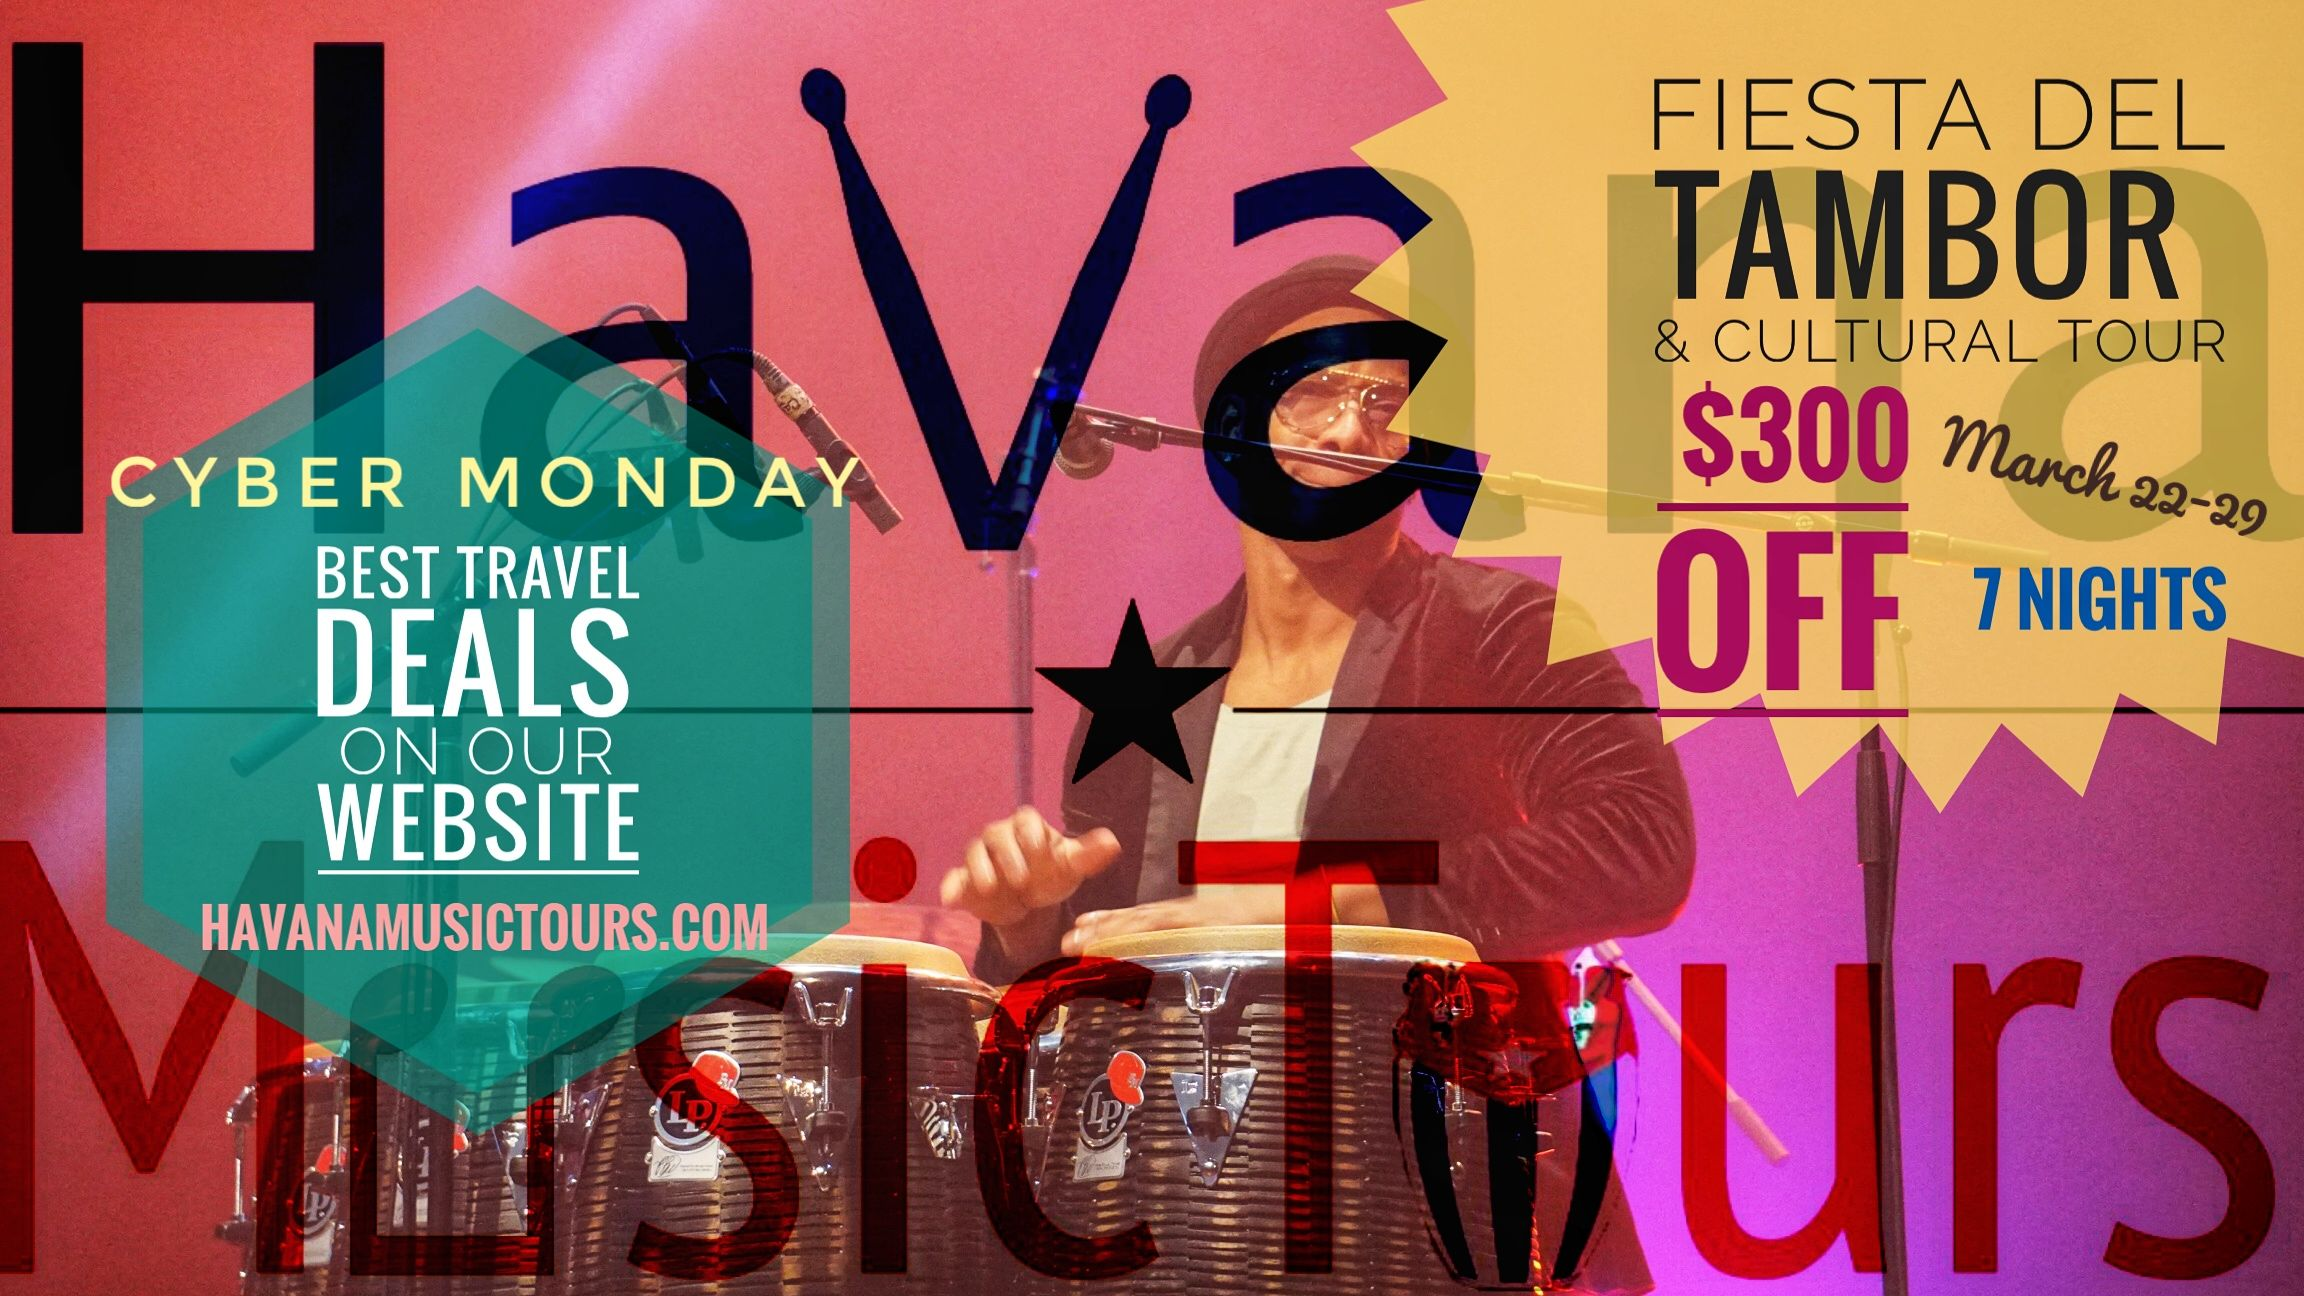 Cuba is a country full of music, check out our new cuba music tours offers! . . 👉musicalgetaways.com / havanamusictours.com   . #musicacubana🇨🇺 #musictours #blackfriday #cybermonday #greatdeals #traveldealsonline #travelscuba #goodtravels  #goodoffersonline #musictravels #holidaysoptions #holidaytraveldeals #holidayspecial #holidayoffers #christmas #traveldeals #viajesbaratos #musicfestival #cubatravel